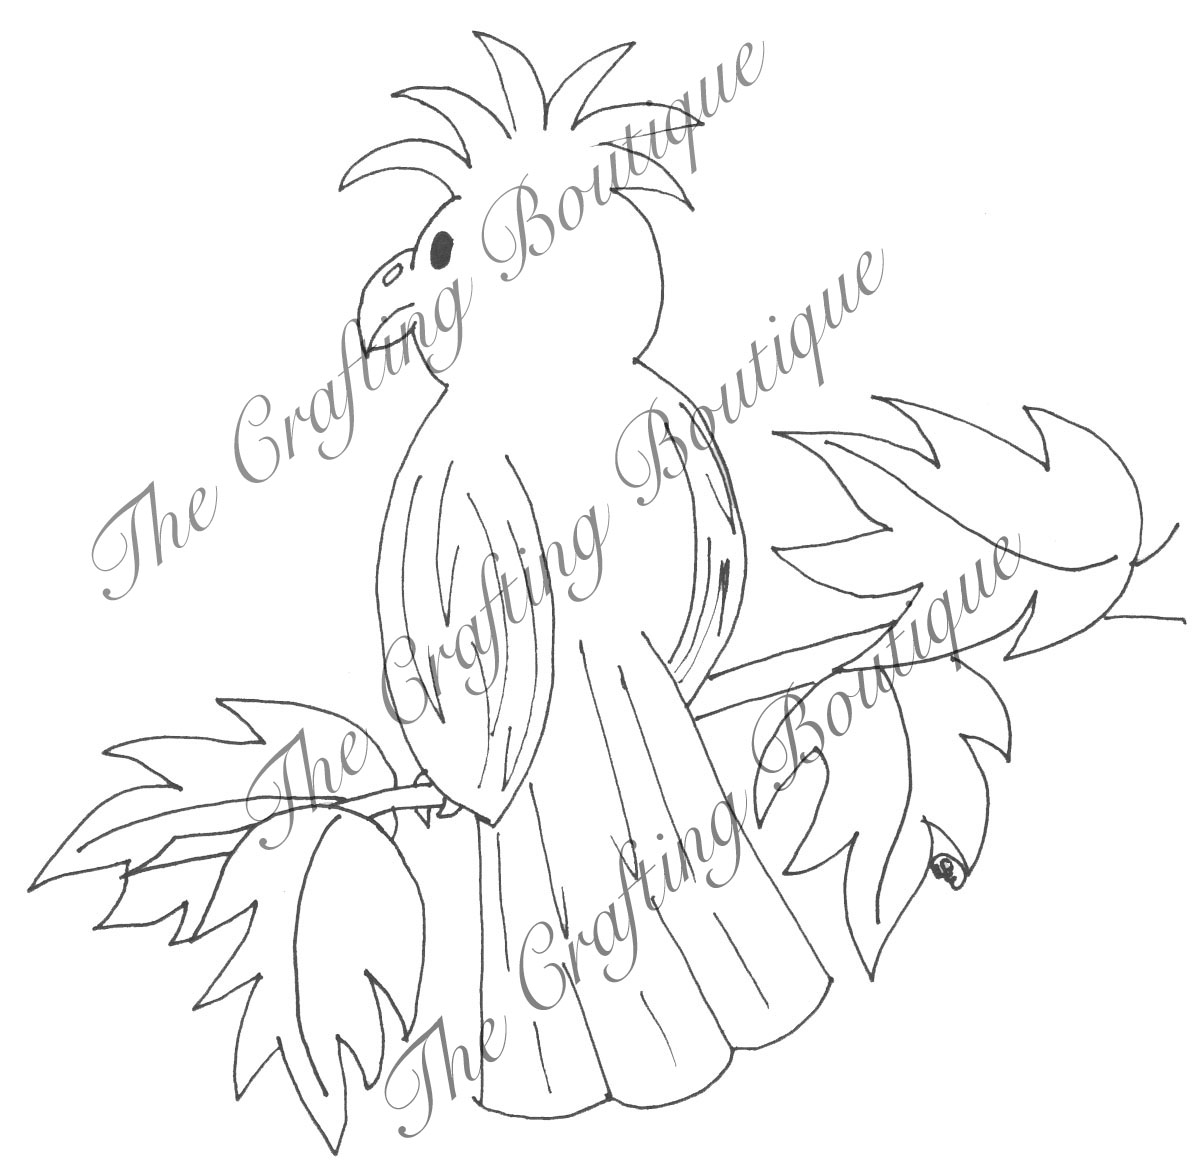 Christmas Tree Coloring Pages moreover Santa Coloring Pages likewise Coloring Pages Merry Christmas moreover Digital Images 31 additionally Baby Animal Coloring Pages. on christmas tree with white and colored lights html